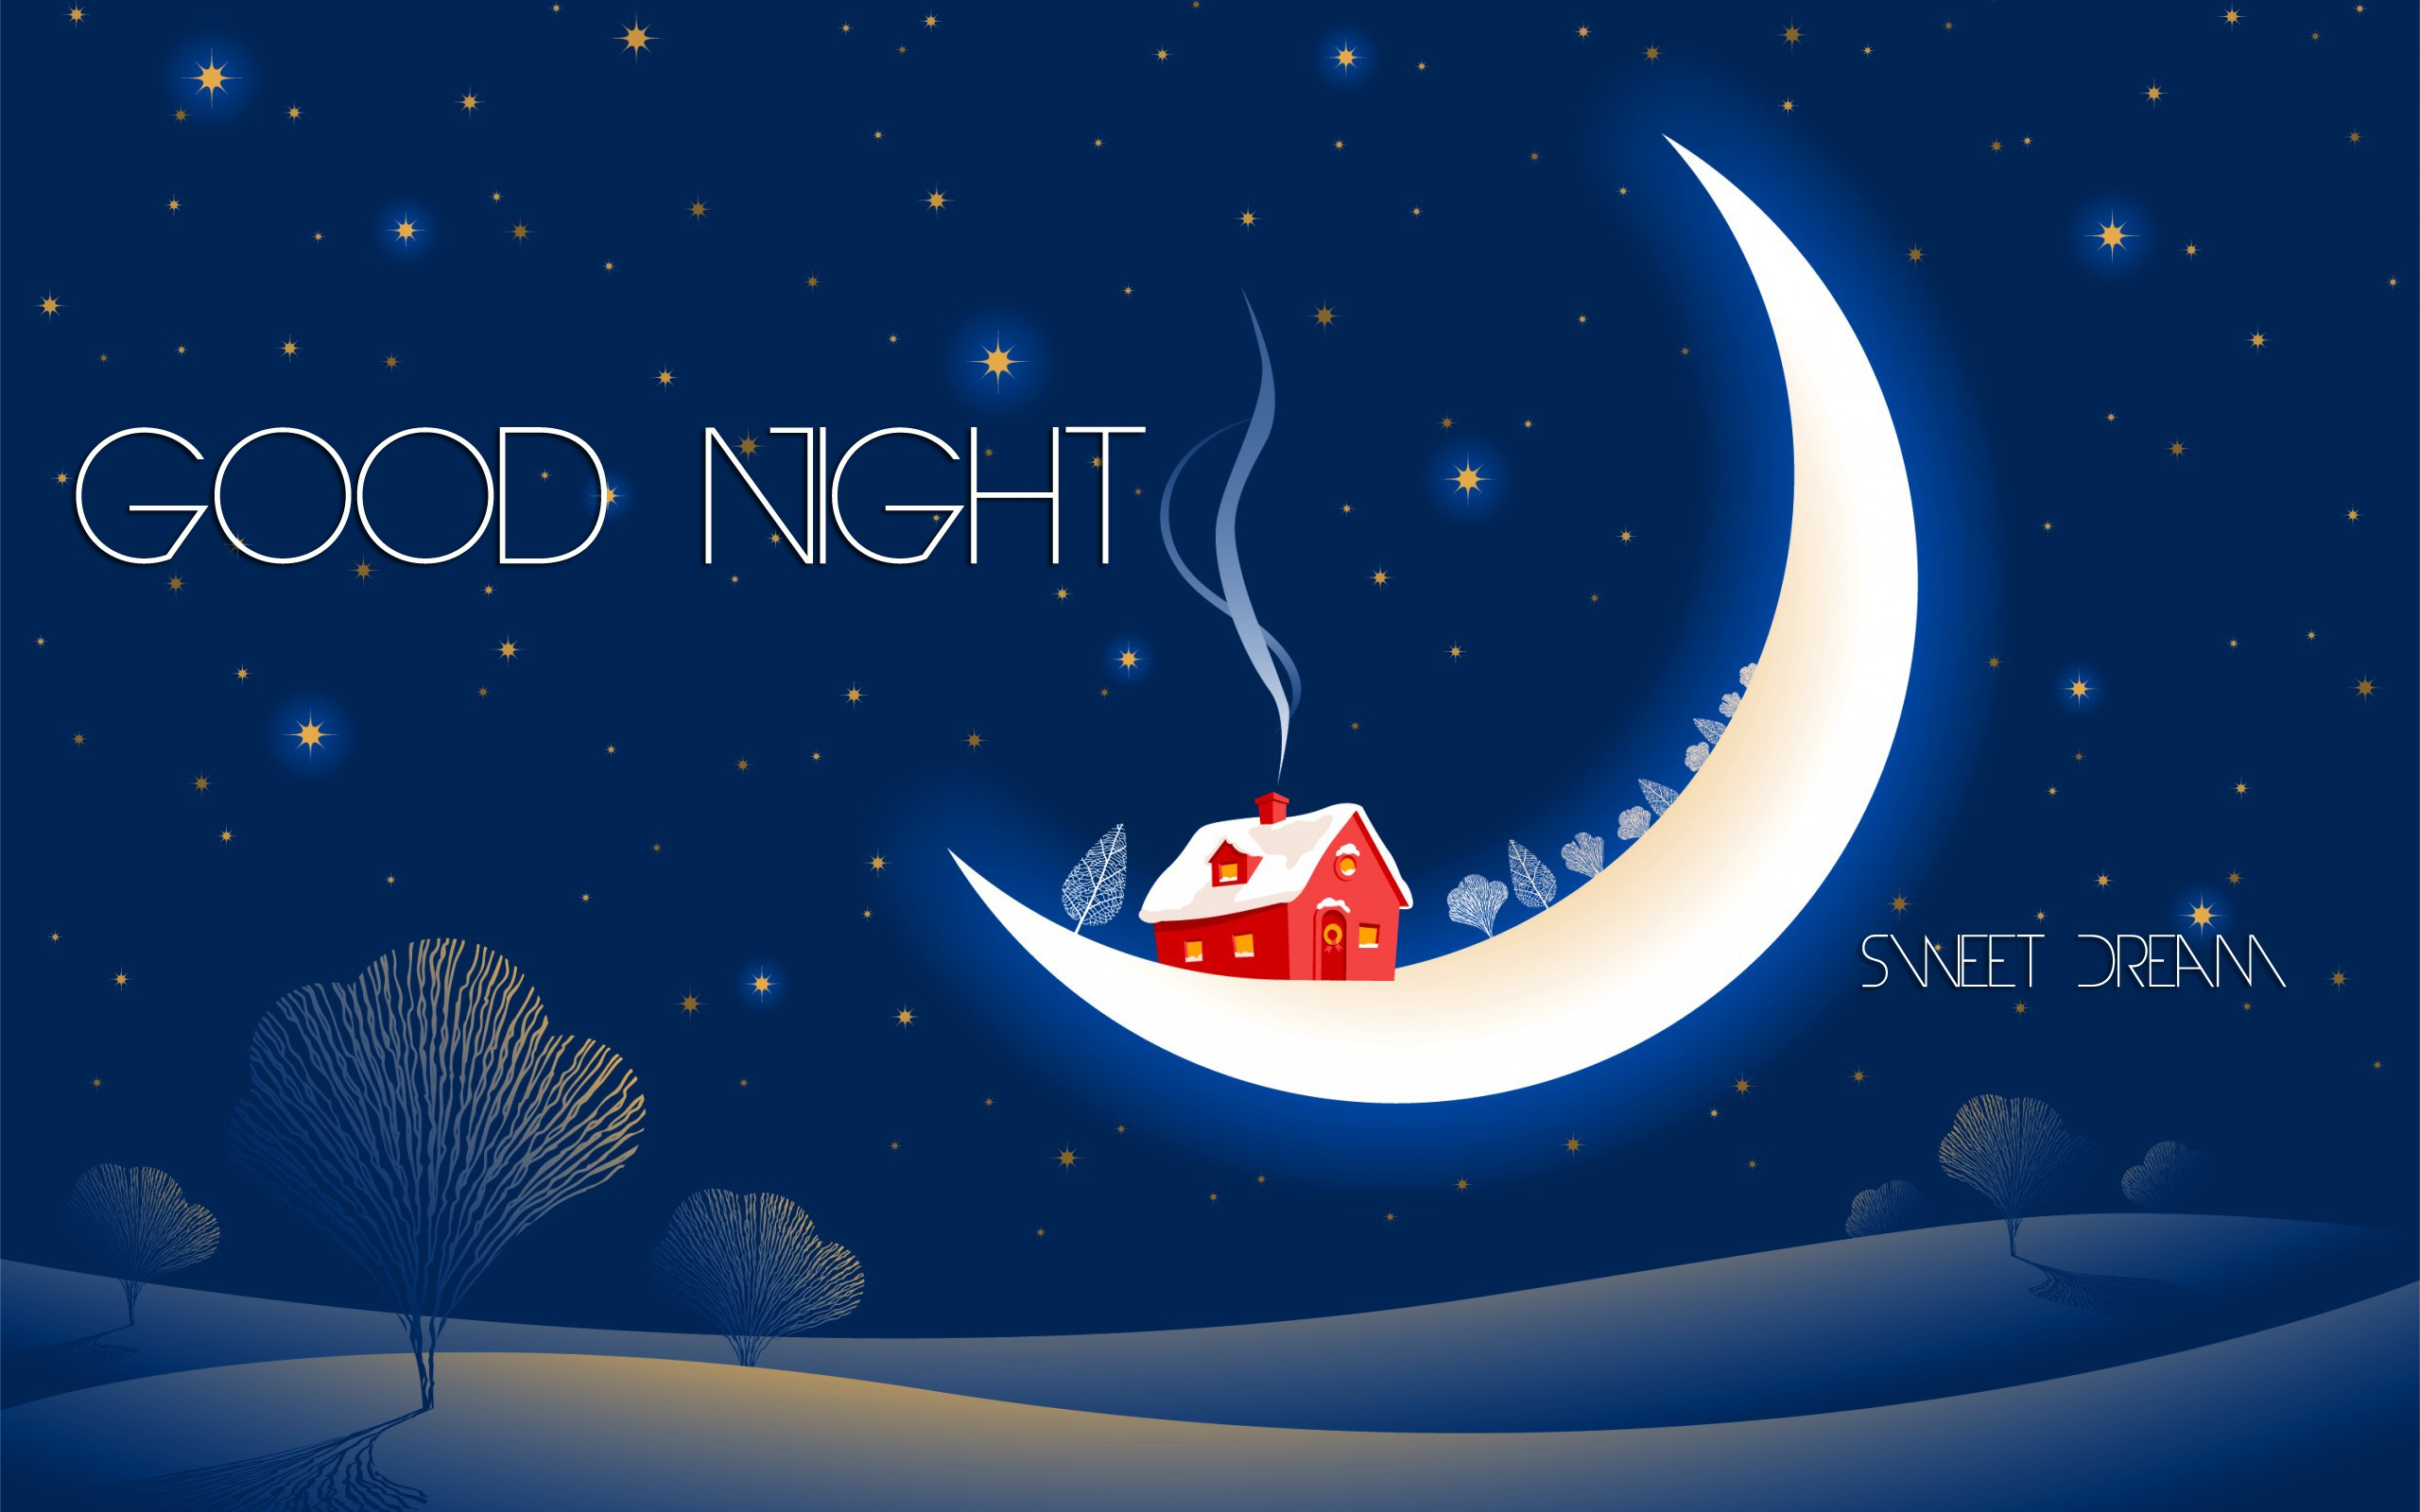 Good Night Wallpaper To Love : Good Night Wallpapers, Pictures, Images